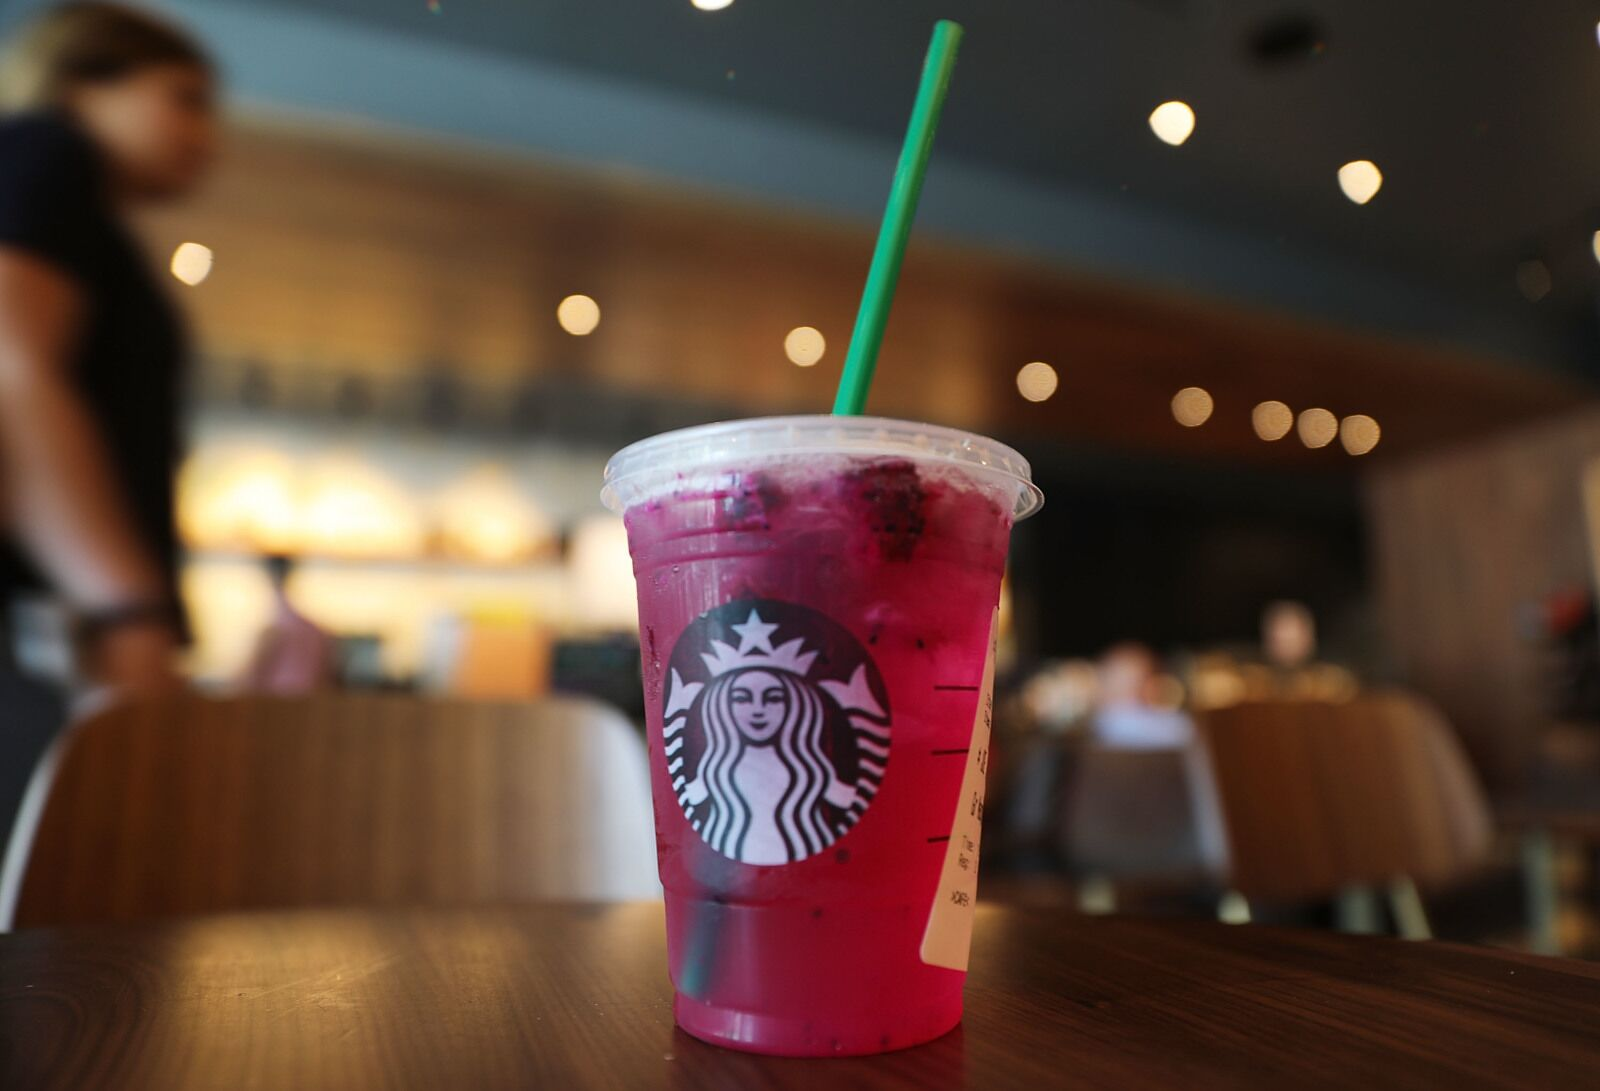 Starbucks decides to revamp their rewards loyalty program and now we have more star options